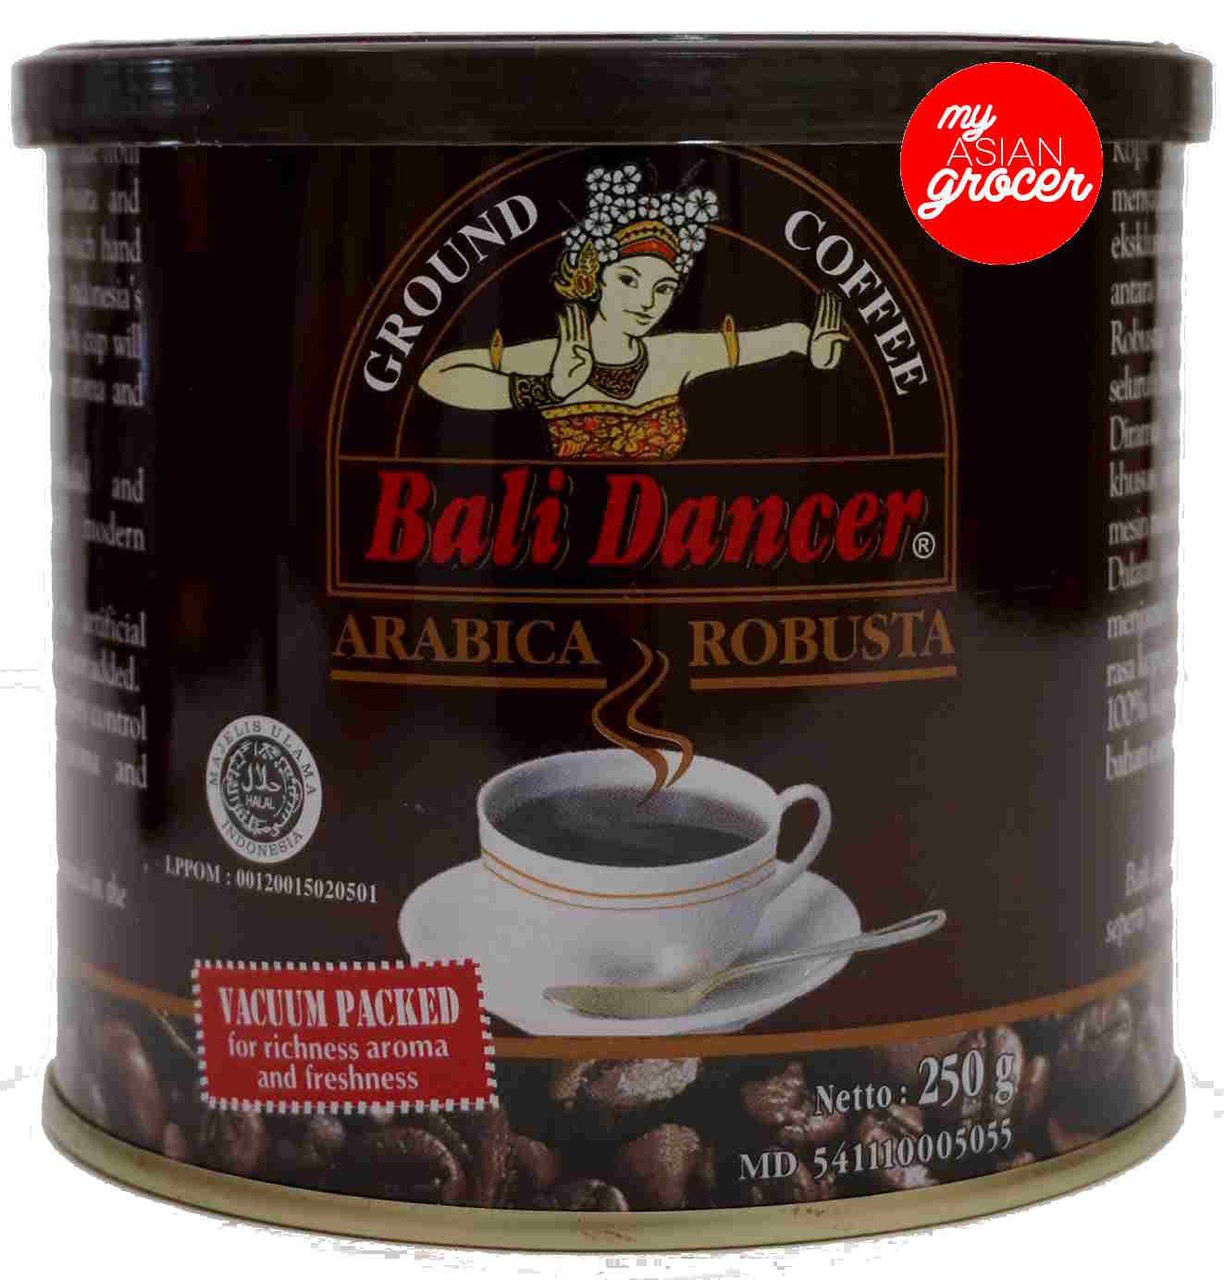 Bali Dancer Ground Coffee 250g My Asian Grocer